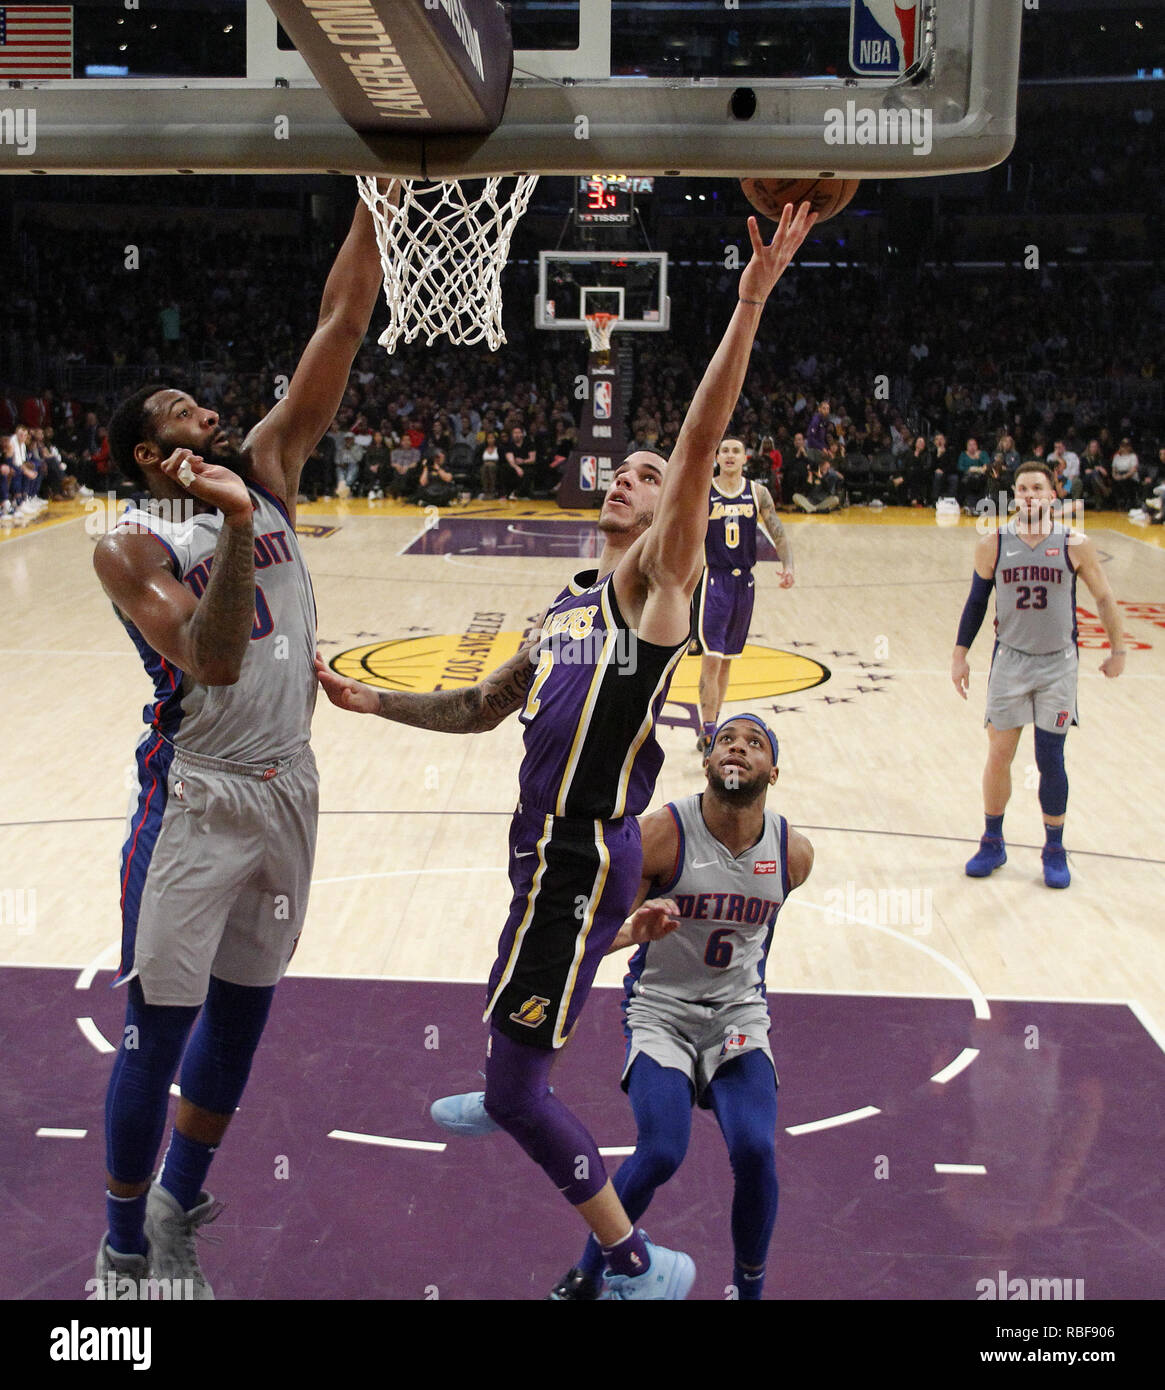 Los Angeles, California, USA. 9th Jan, 2019. Los Angeles Lakers' Lonzo Ball (2) goes to basket while defended by Detroit Pistons' Andre Drummond (0) during an NBA basketball game between Los Angeles Lakers and Detroit Pistons Wednesday, Jan. 9, 2019, in Los Angeles. Credit: Ringo Chiu/ZUMA Wire/Alamy Live News Stock Photo